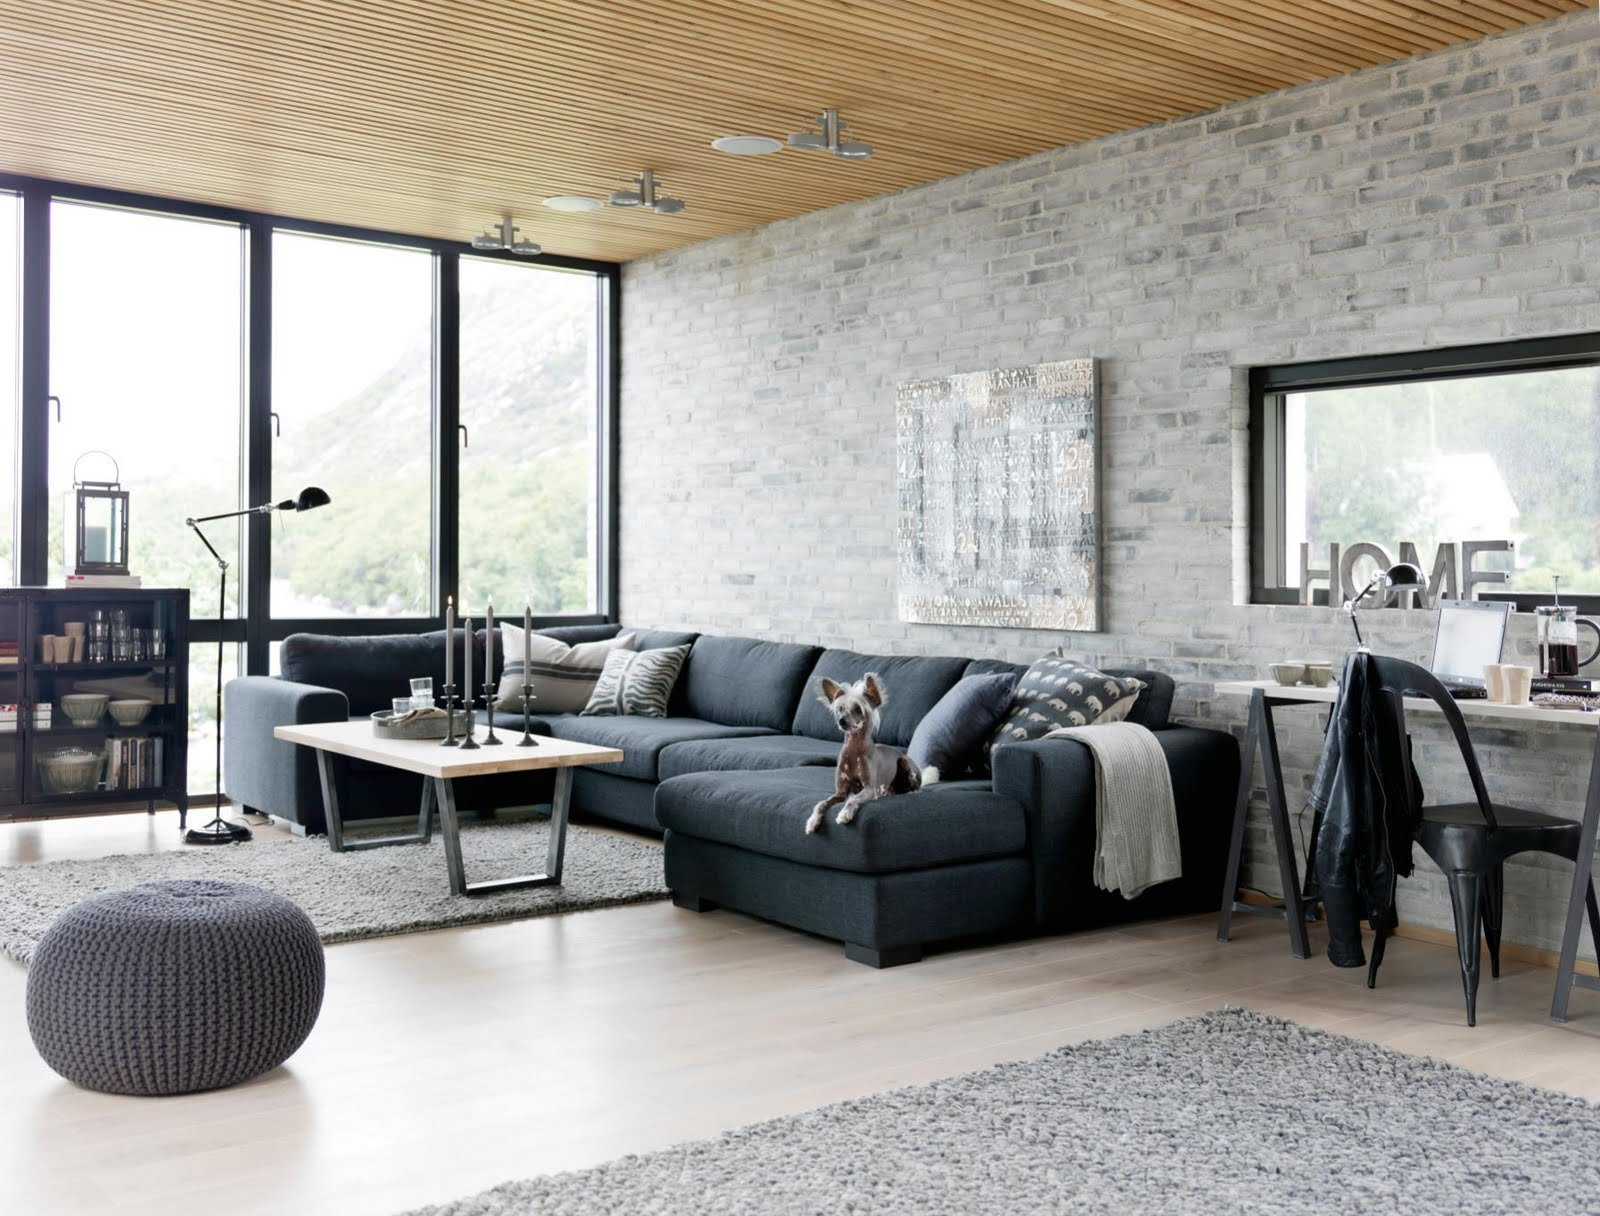 Industrial interior design living room my decorative for Interior living room decoration